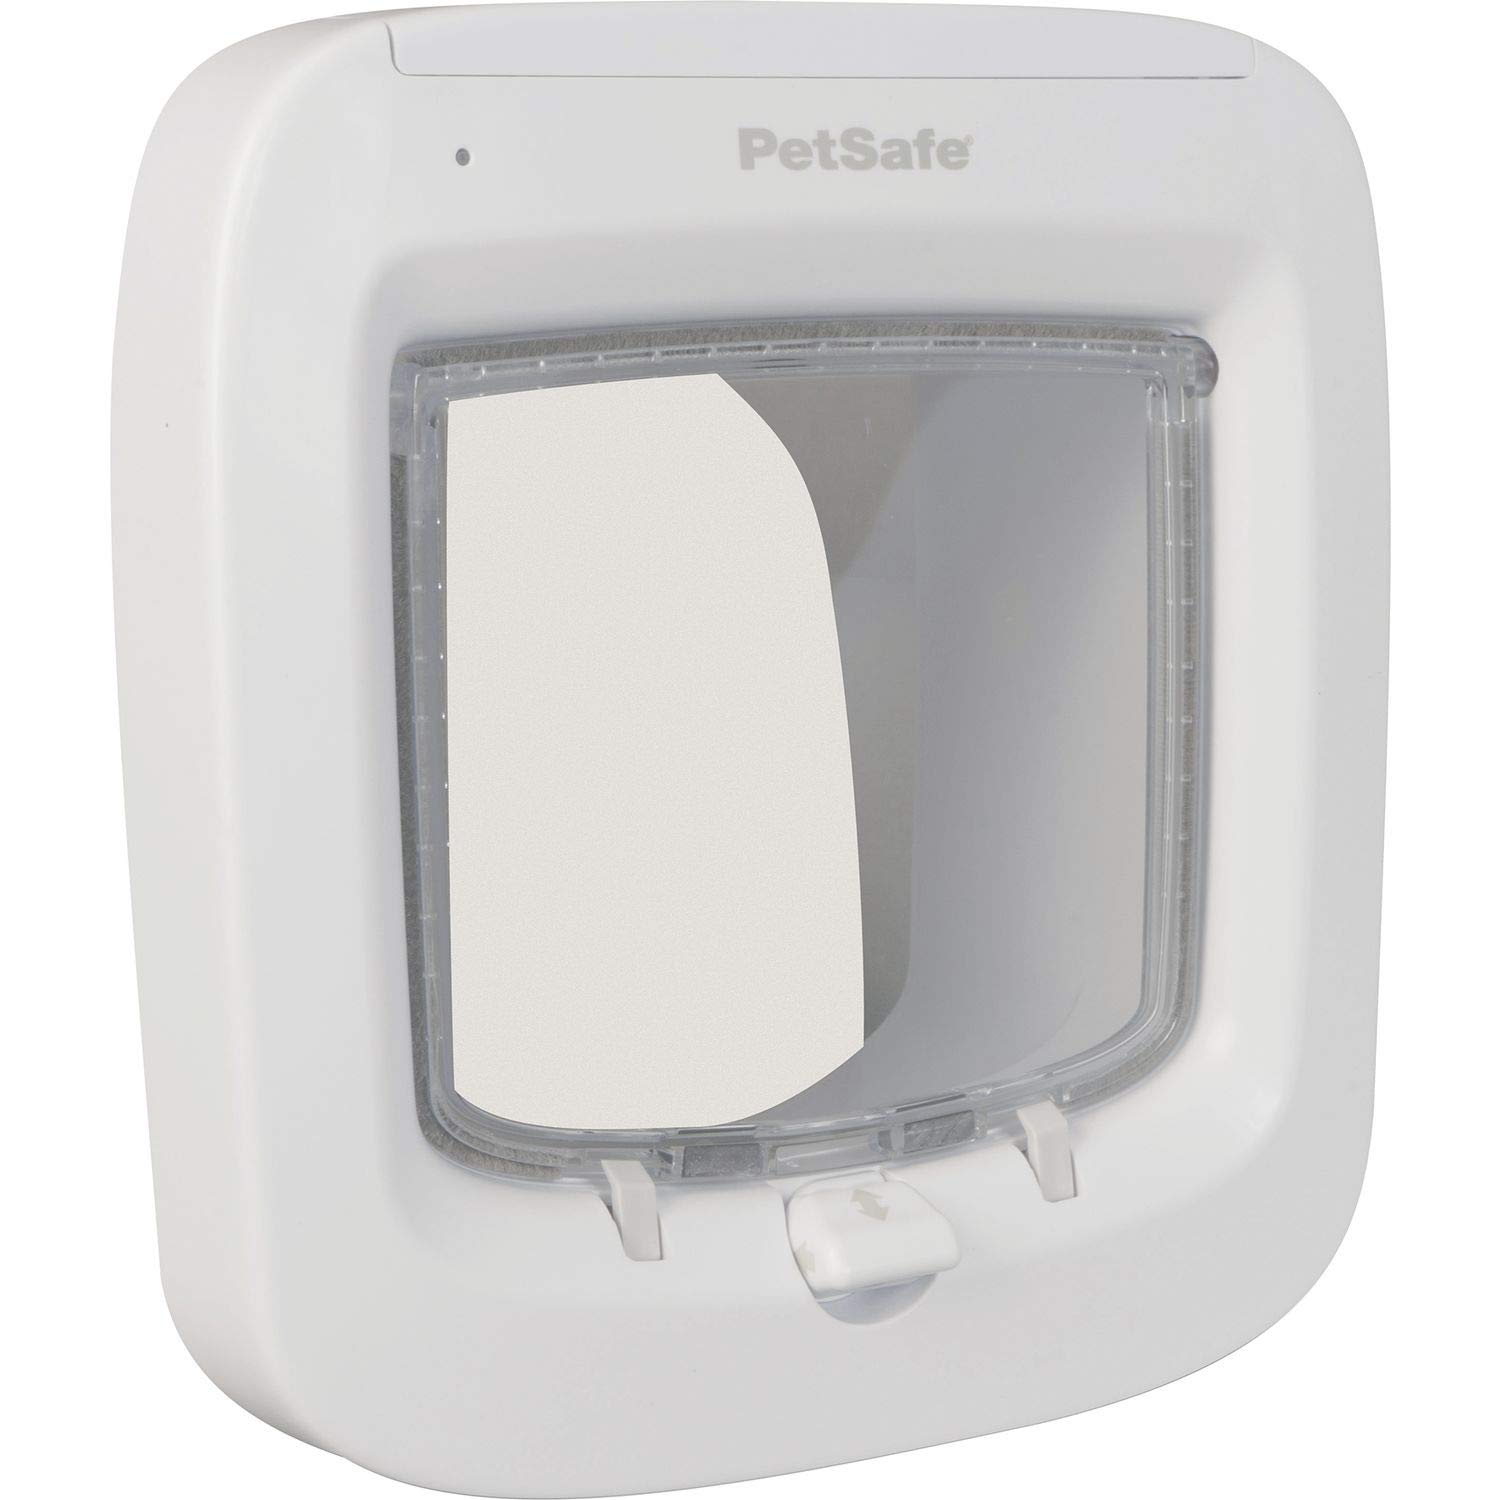 PetSafe Microchip Cat Door, Exclusive Entry with Convenient 4 Way Locking, Easy Install, Energy Efficient